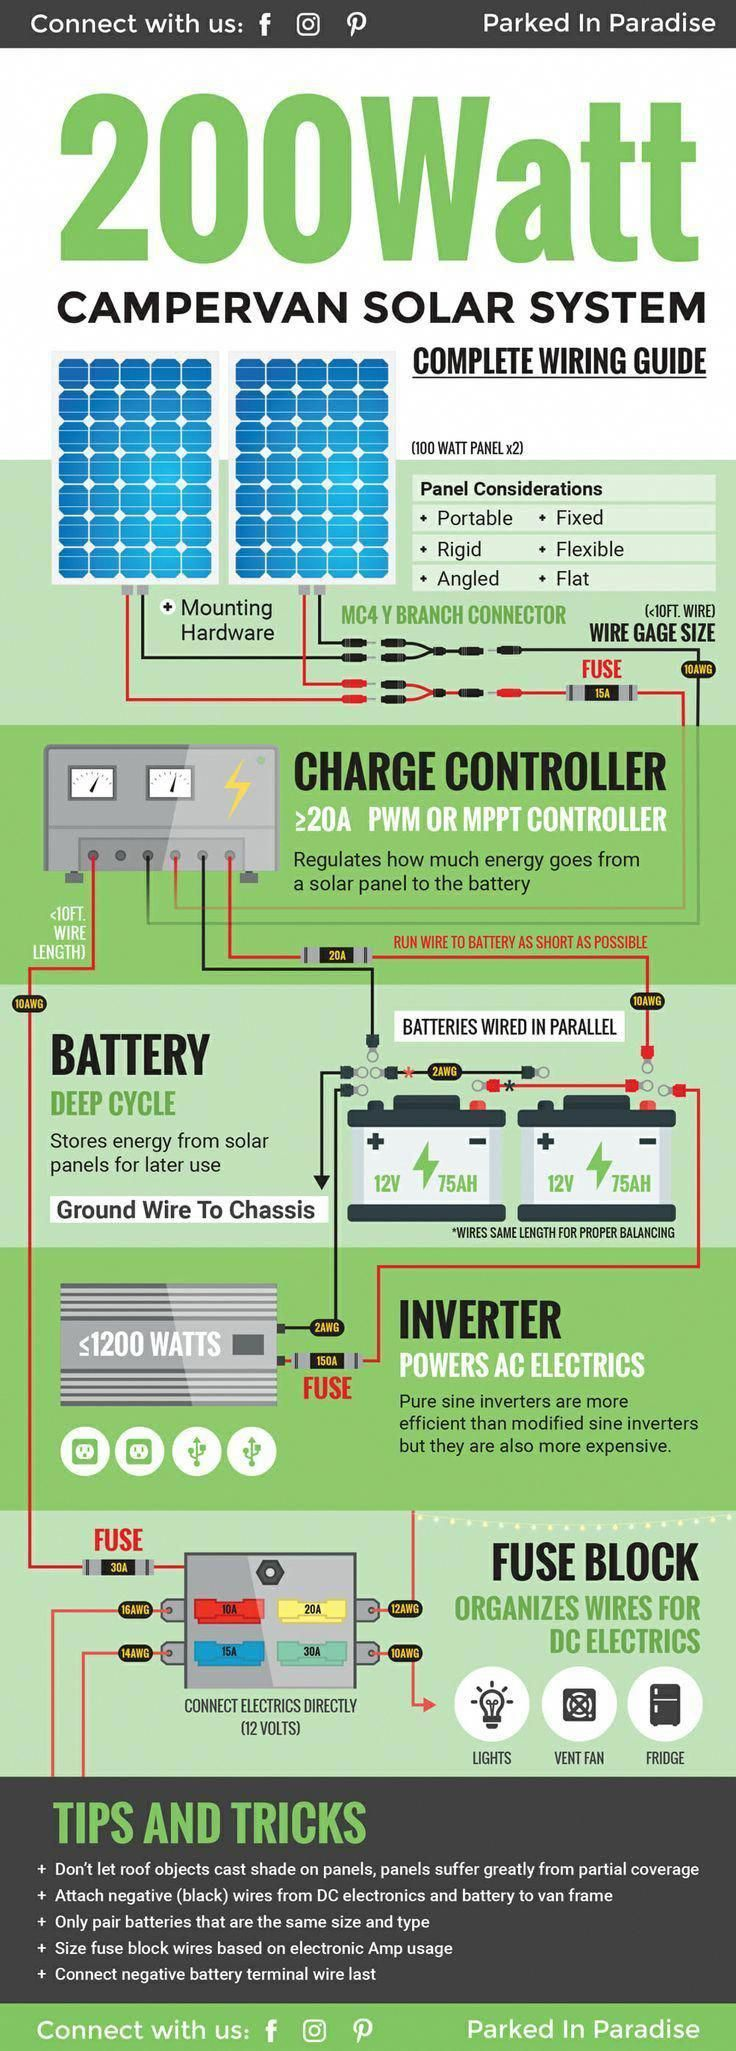 Complete Diy Wiring Guide For A 200 Watt Solar Panel System Perfect For A Campervan Build I Need To Save In 2020 Solar Energy Panels Solar Energy System Solar Panels